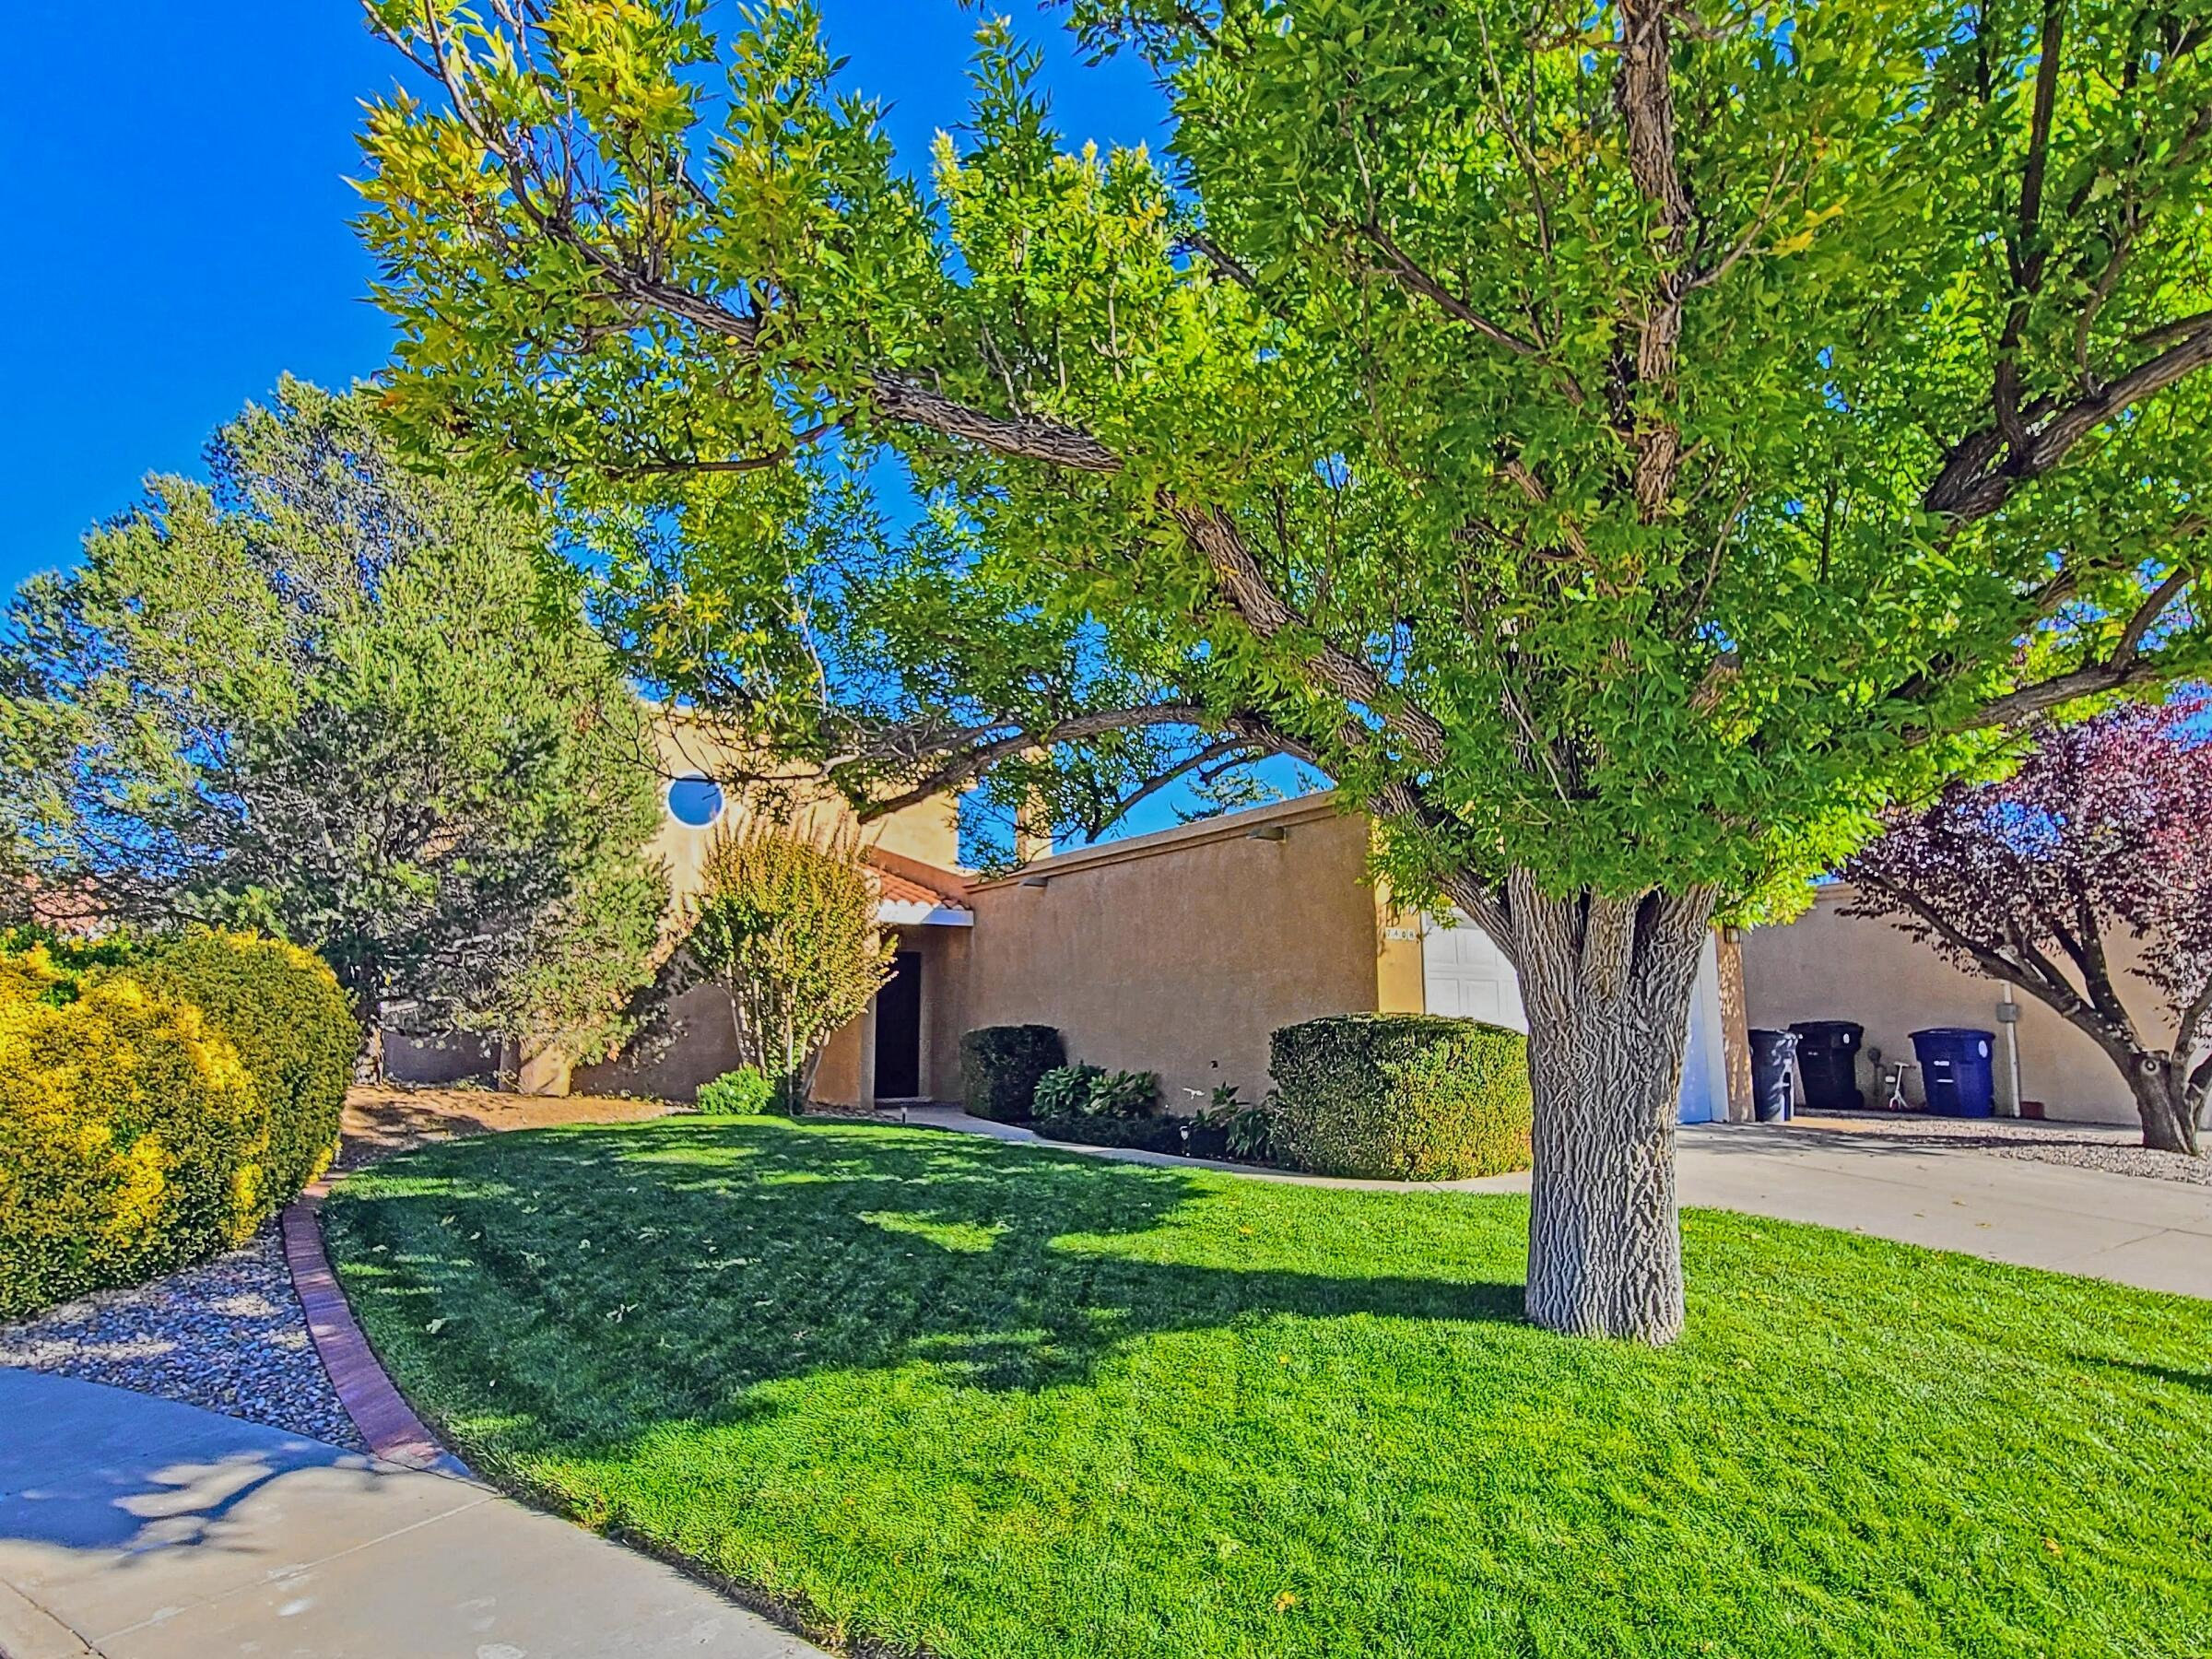 TRUE custom design & custom built home in one of ABQ's most popular neighborhoods,  HERITAGE EAST, is available for the first time EVER! Tucked away from traffic and busy streets, this home is located on a premium cul-de-sac lot that is remarkably spacious & beautifully landscaped w/outdoor living area, redwood deck, lush lawn, mature trees & garden area.  Step inside and the cozy great room is the heart of the home,, with soaring T&G ceilings, Kiva FP & wet bar. 1st Floor Owner's Suite with HUGE master bath w/dbl sink vanity, oversized jetted spa tub, sep shower & lrg w/I closet! Generous Storage, Hurd Windows, Newer Roof, Newer Master Cool, Recently Upgraded SS appliances incl dbl oven, top notch fridge and Bosch micro. Solid wood doors, cletestory windows, skylights, custom millwork, ++